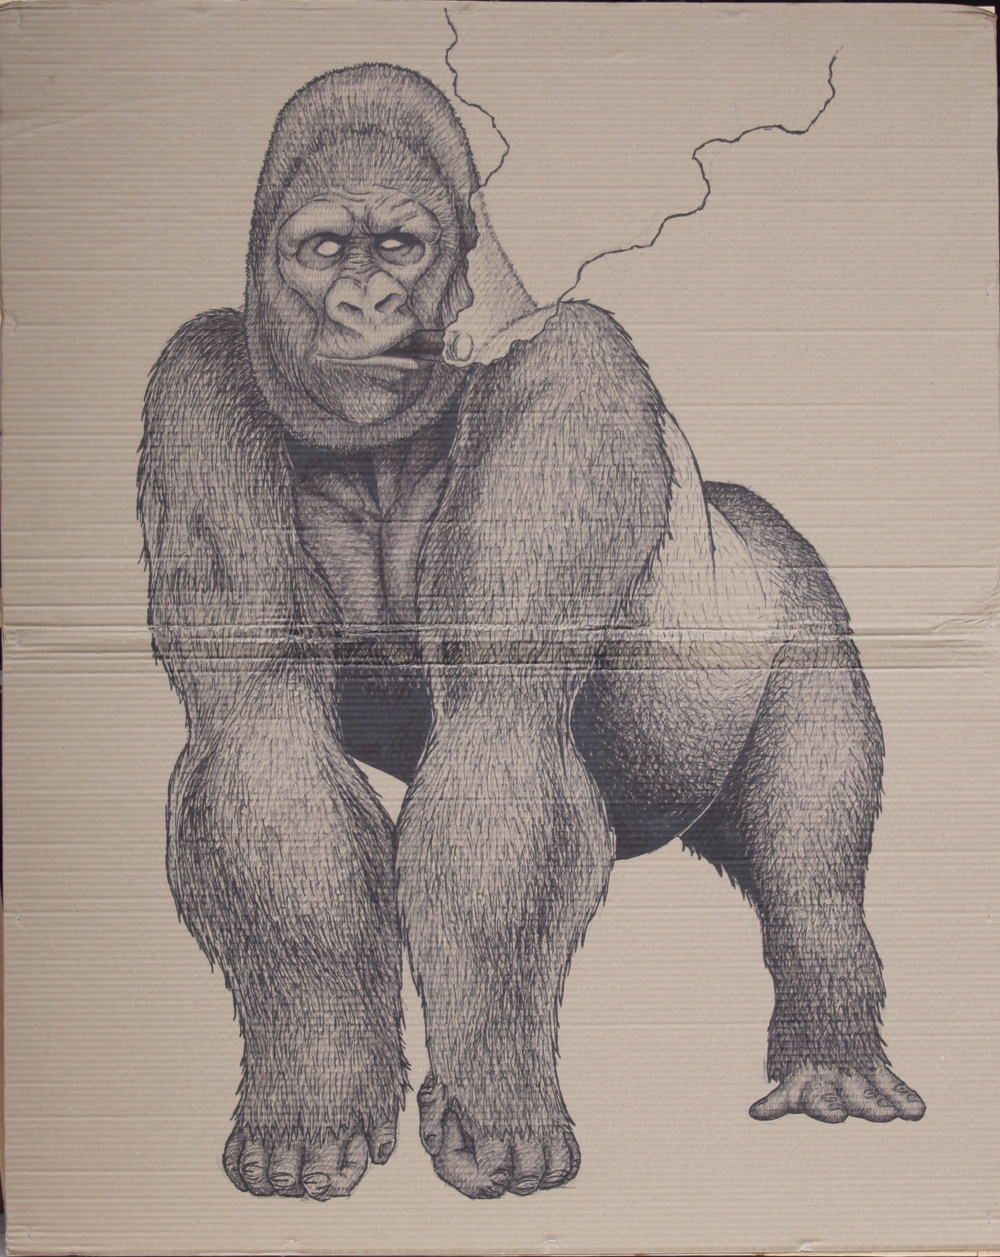 Gorilla with Cigar   2015  Sharpie on cardboard   48x60